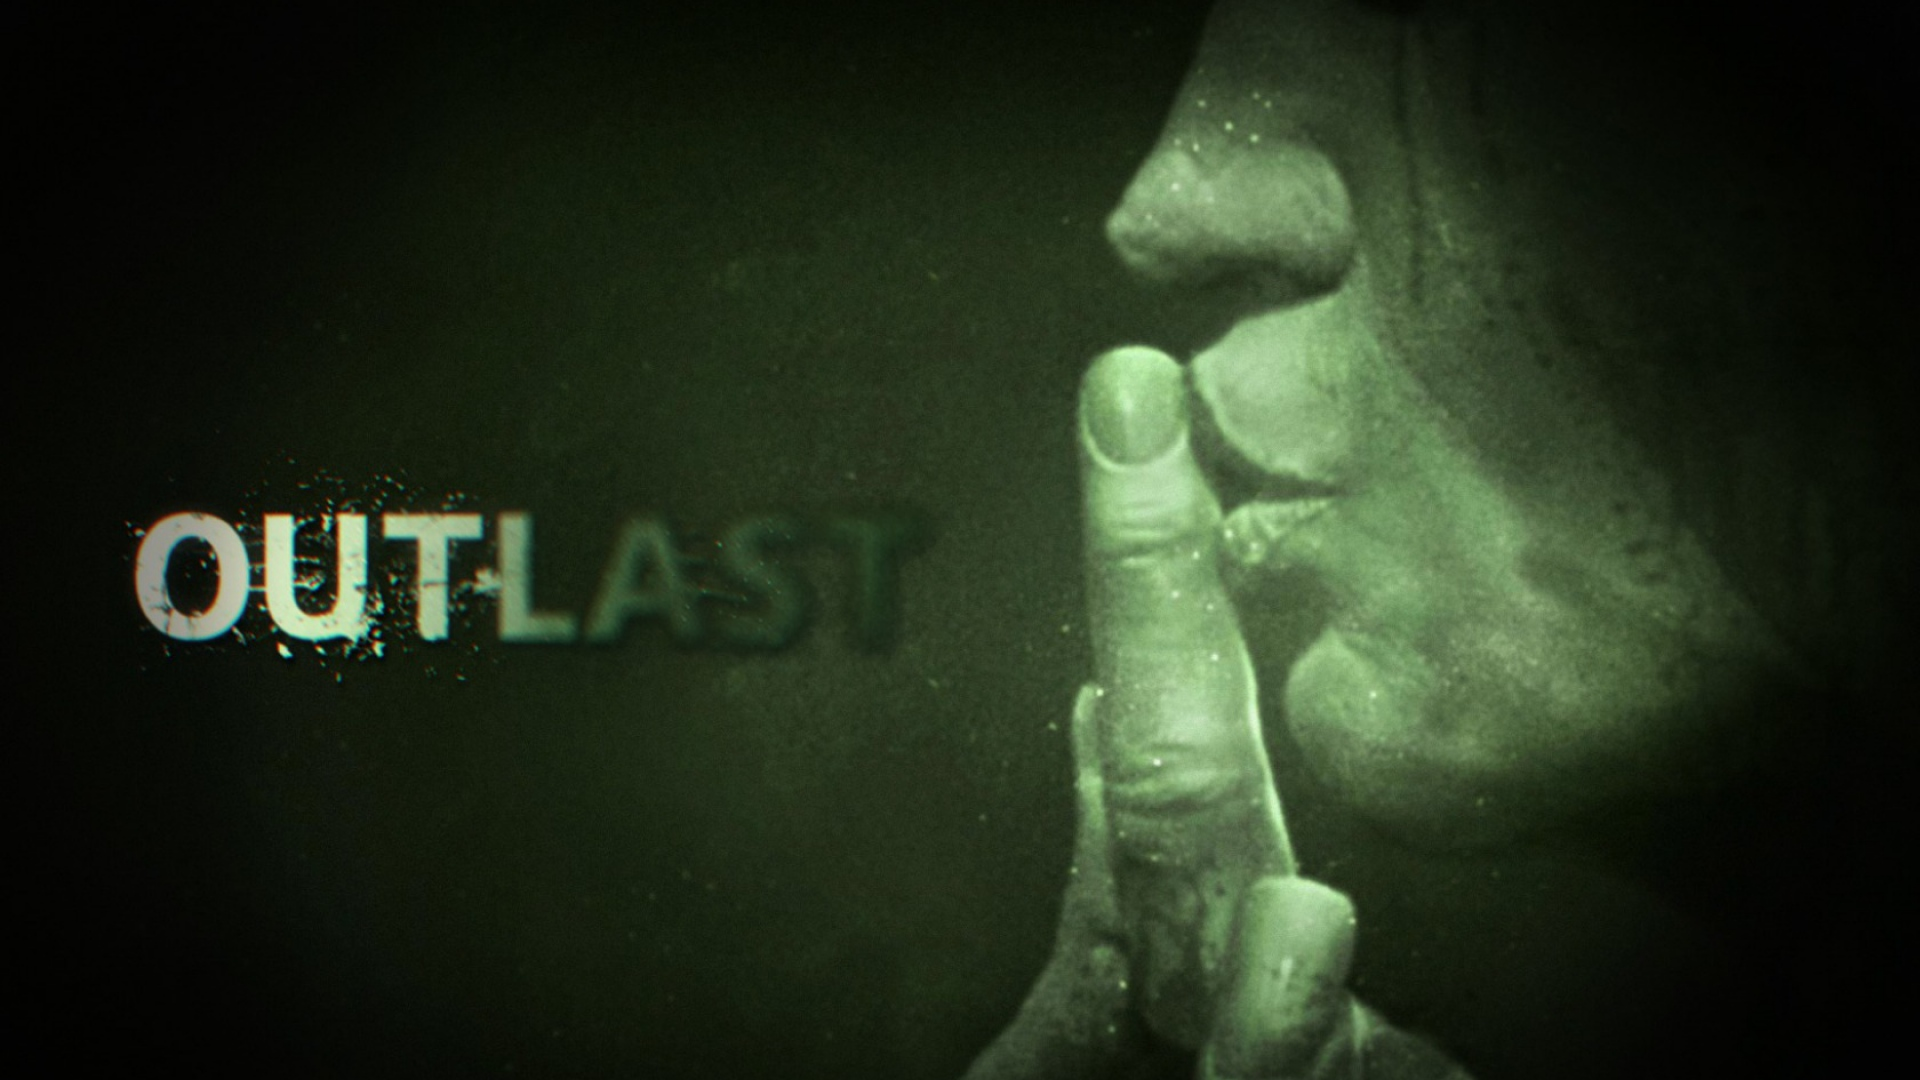 1920x1080 - Outlast HD Wallpapers 18